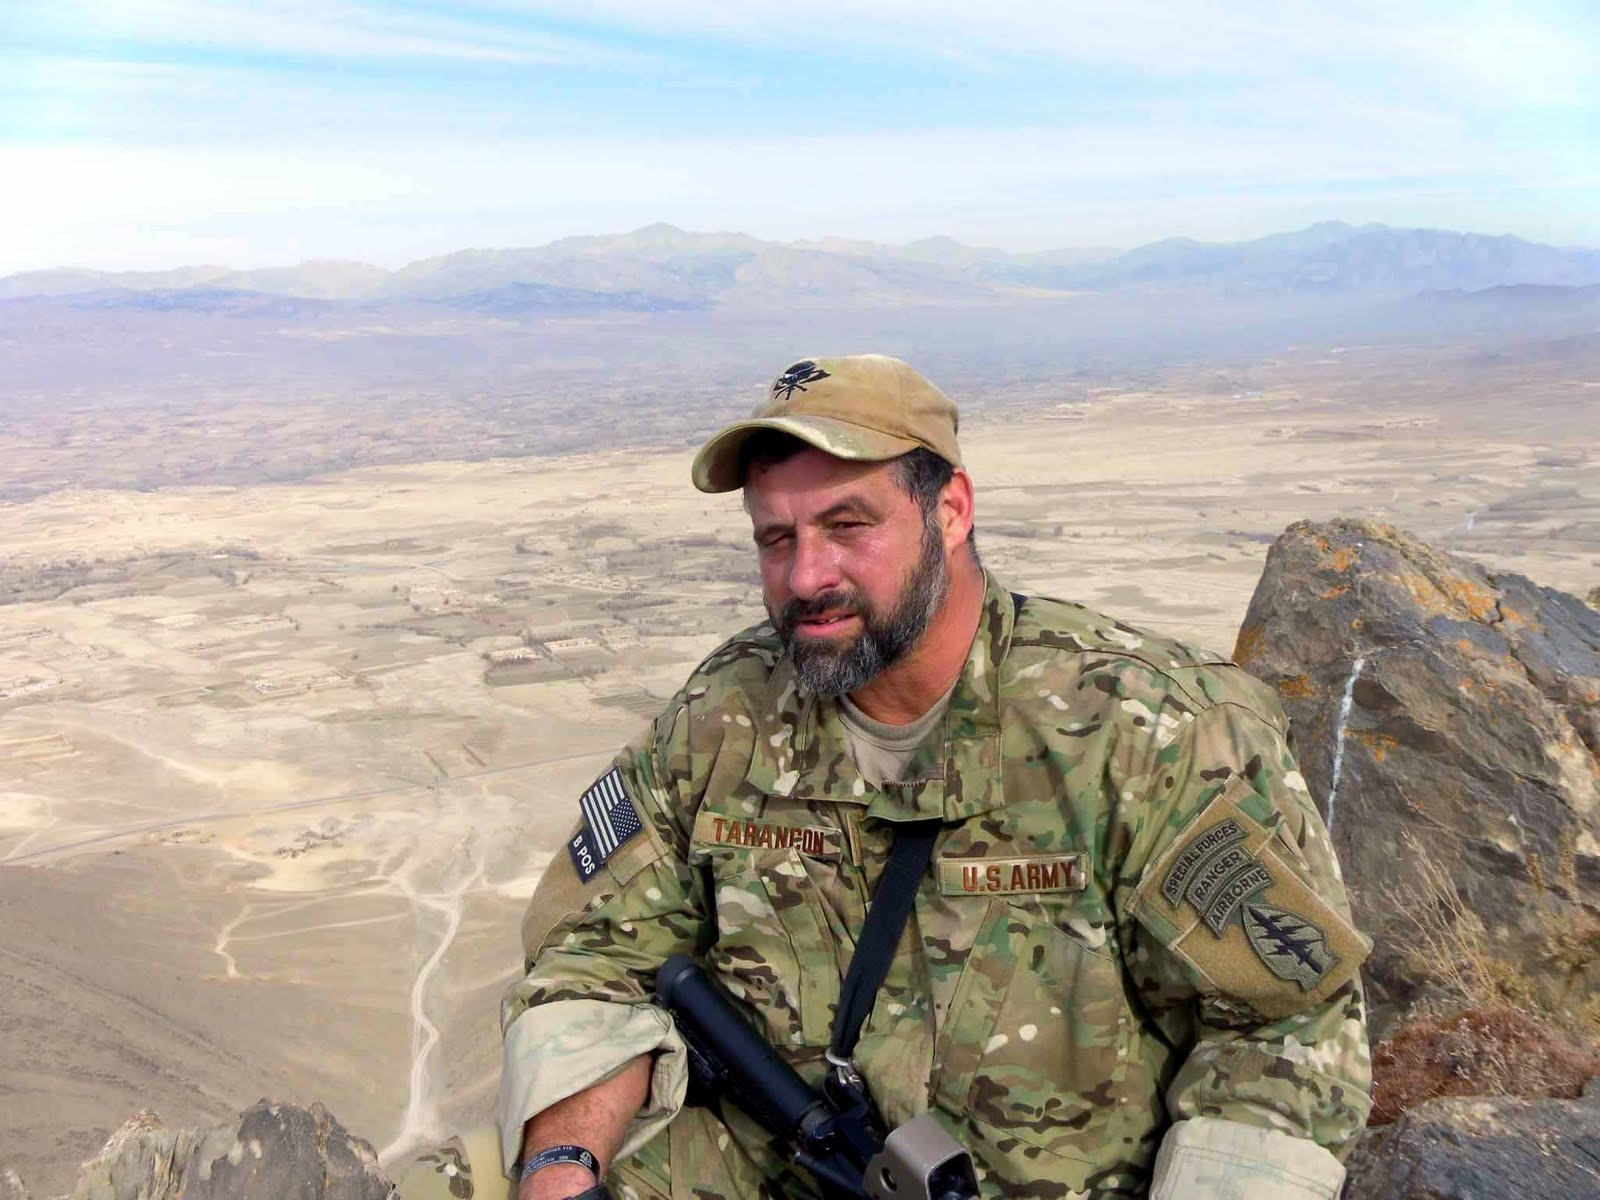 Warrior SOS: Interview with a US Special Forces operator